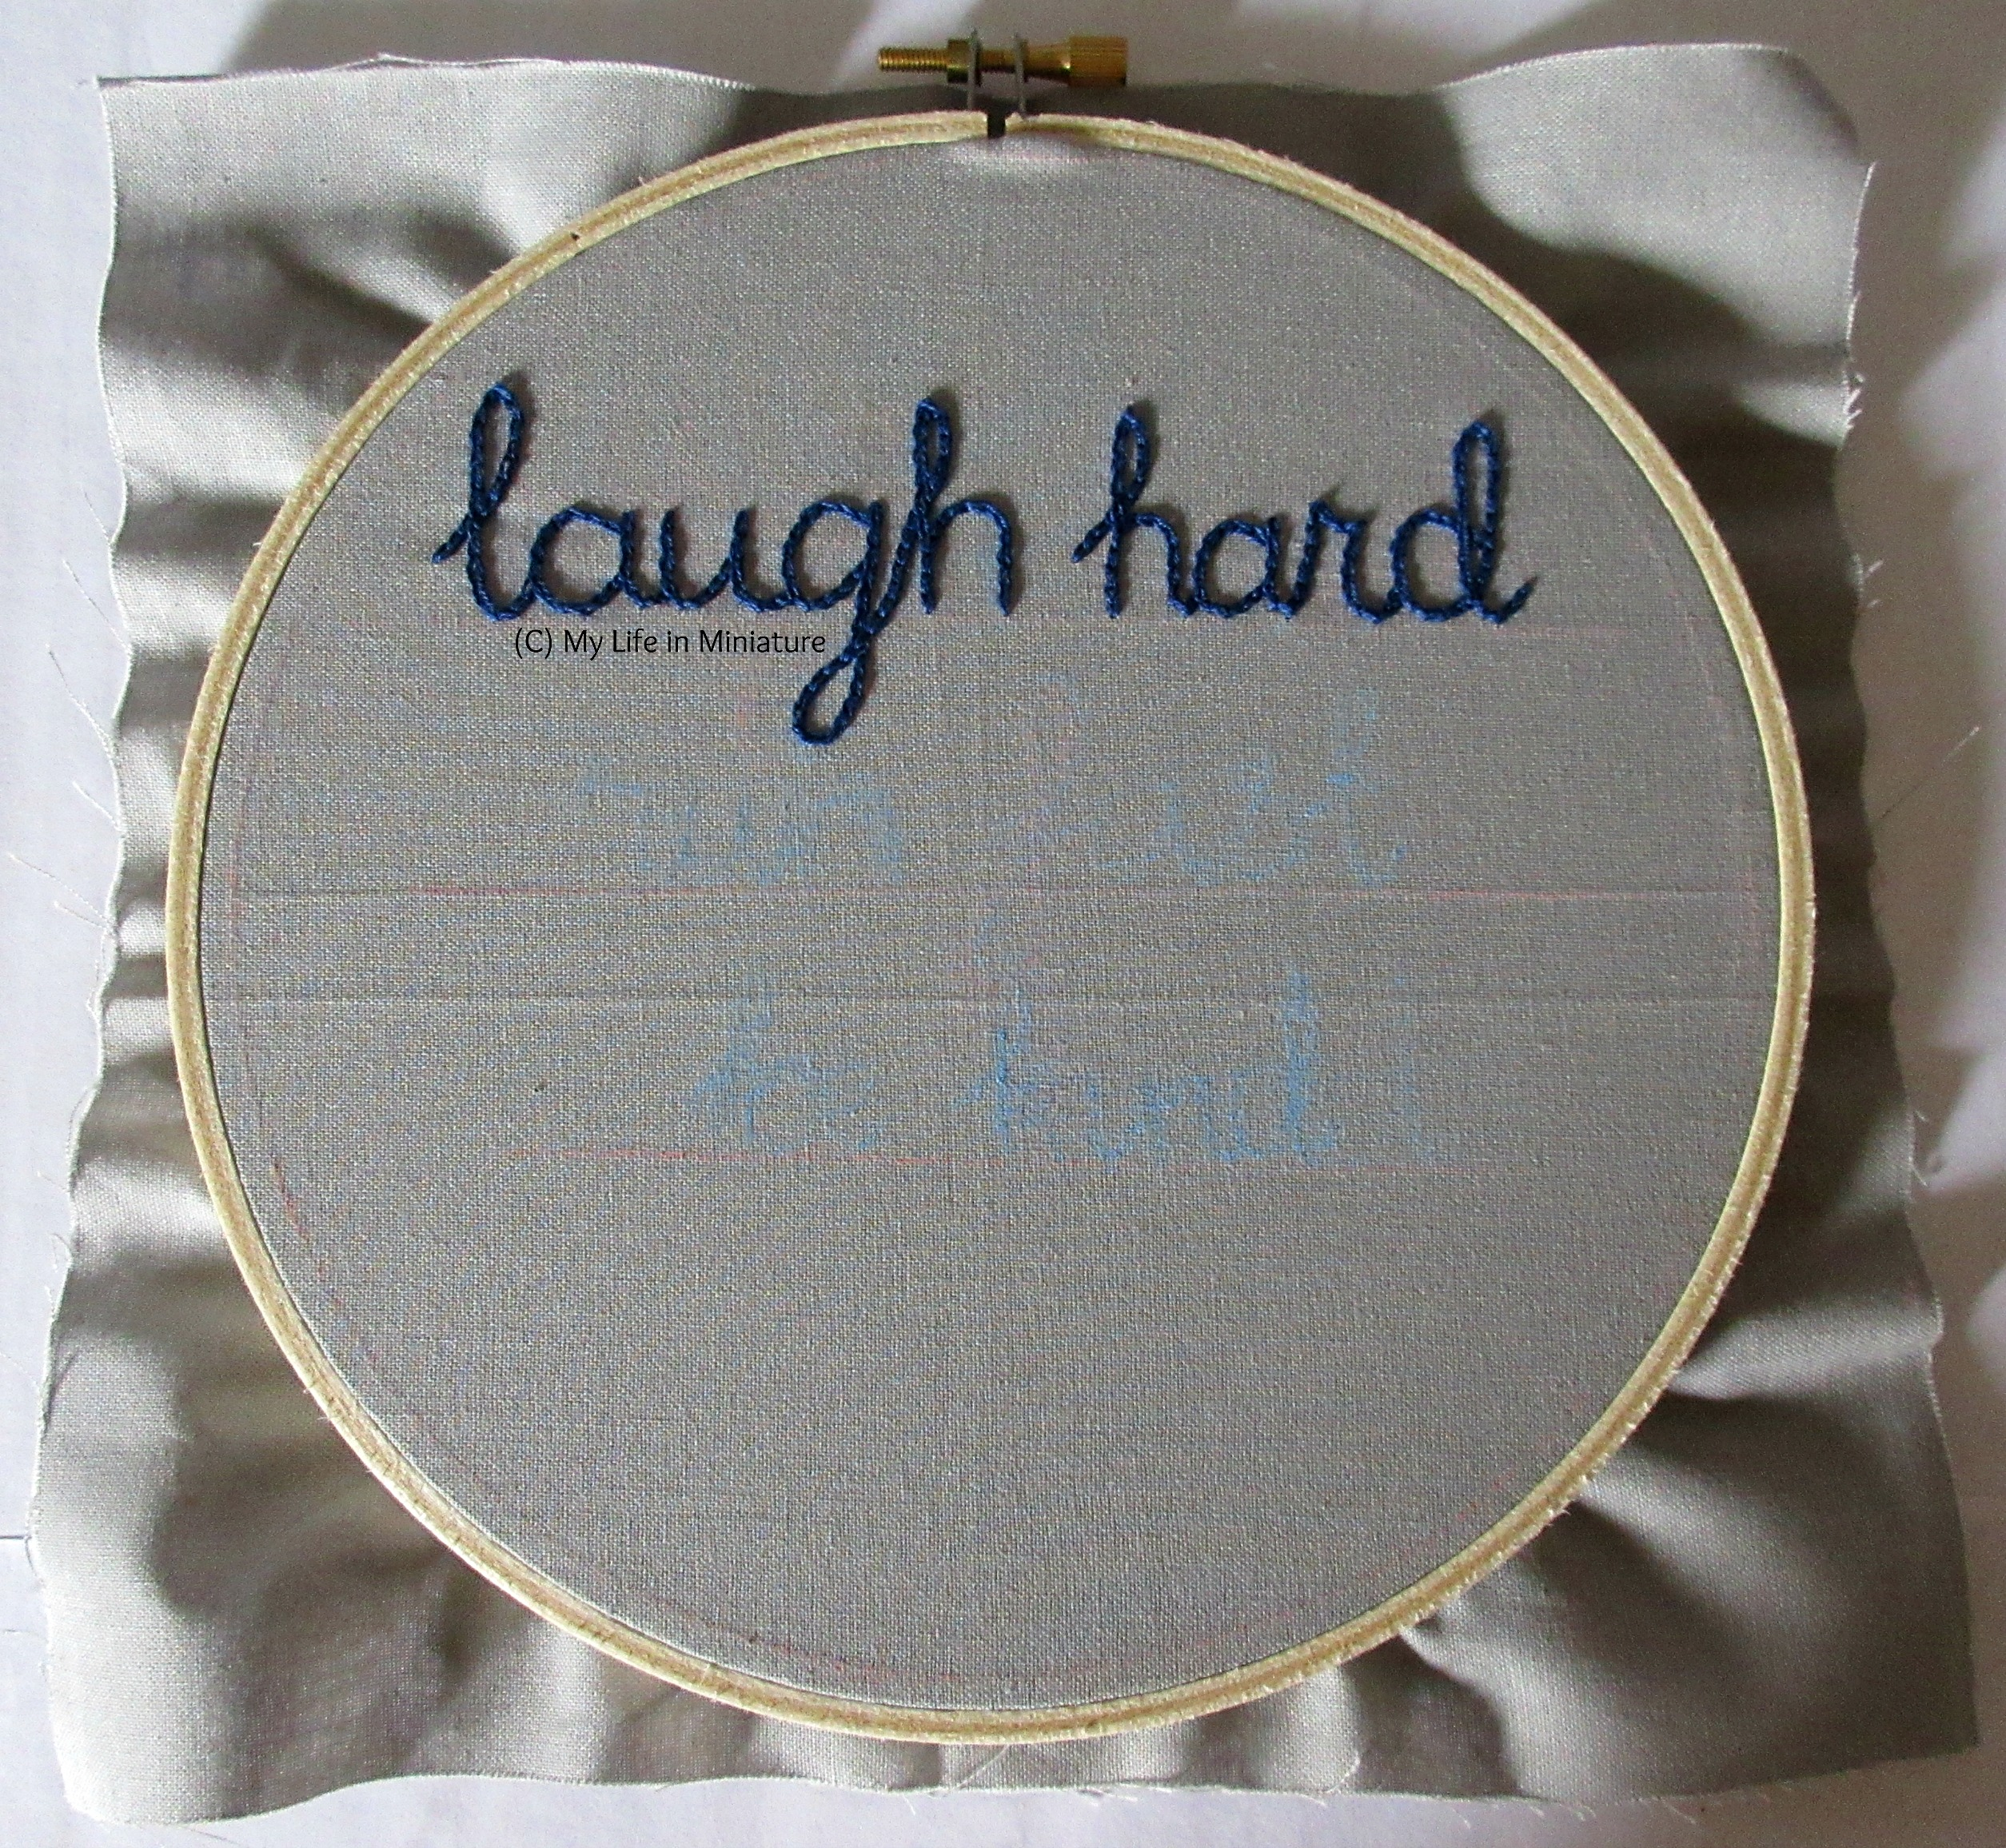 An embroidery hoop fills the image, strung with grey fabric. The phrase 'laugh hard' is stitched across the top third in dark blue chain stitch.